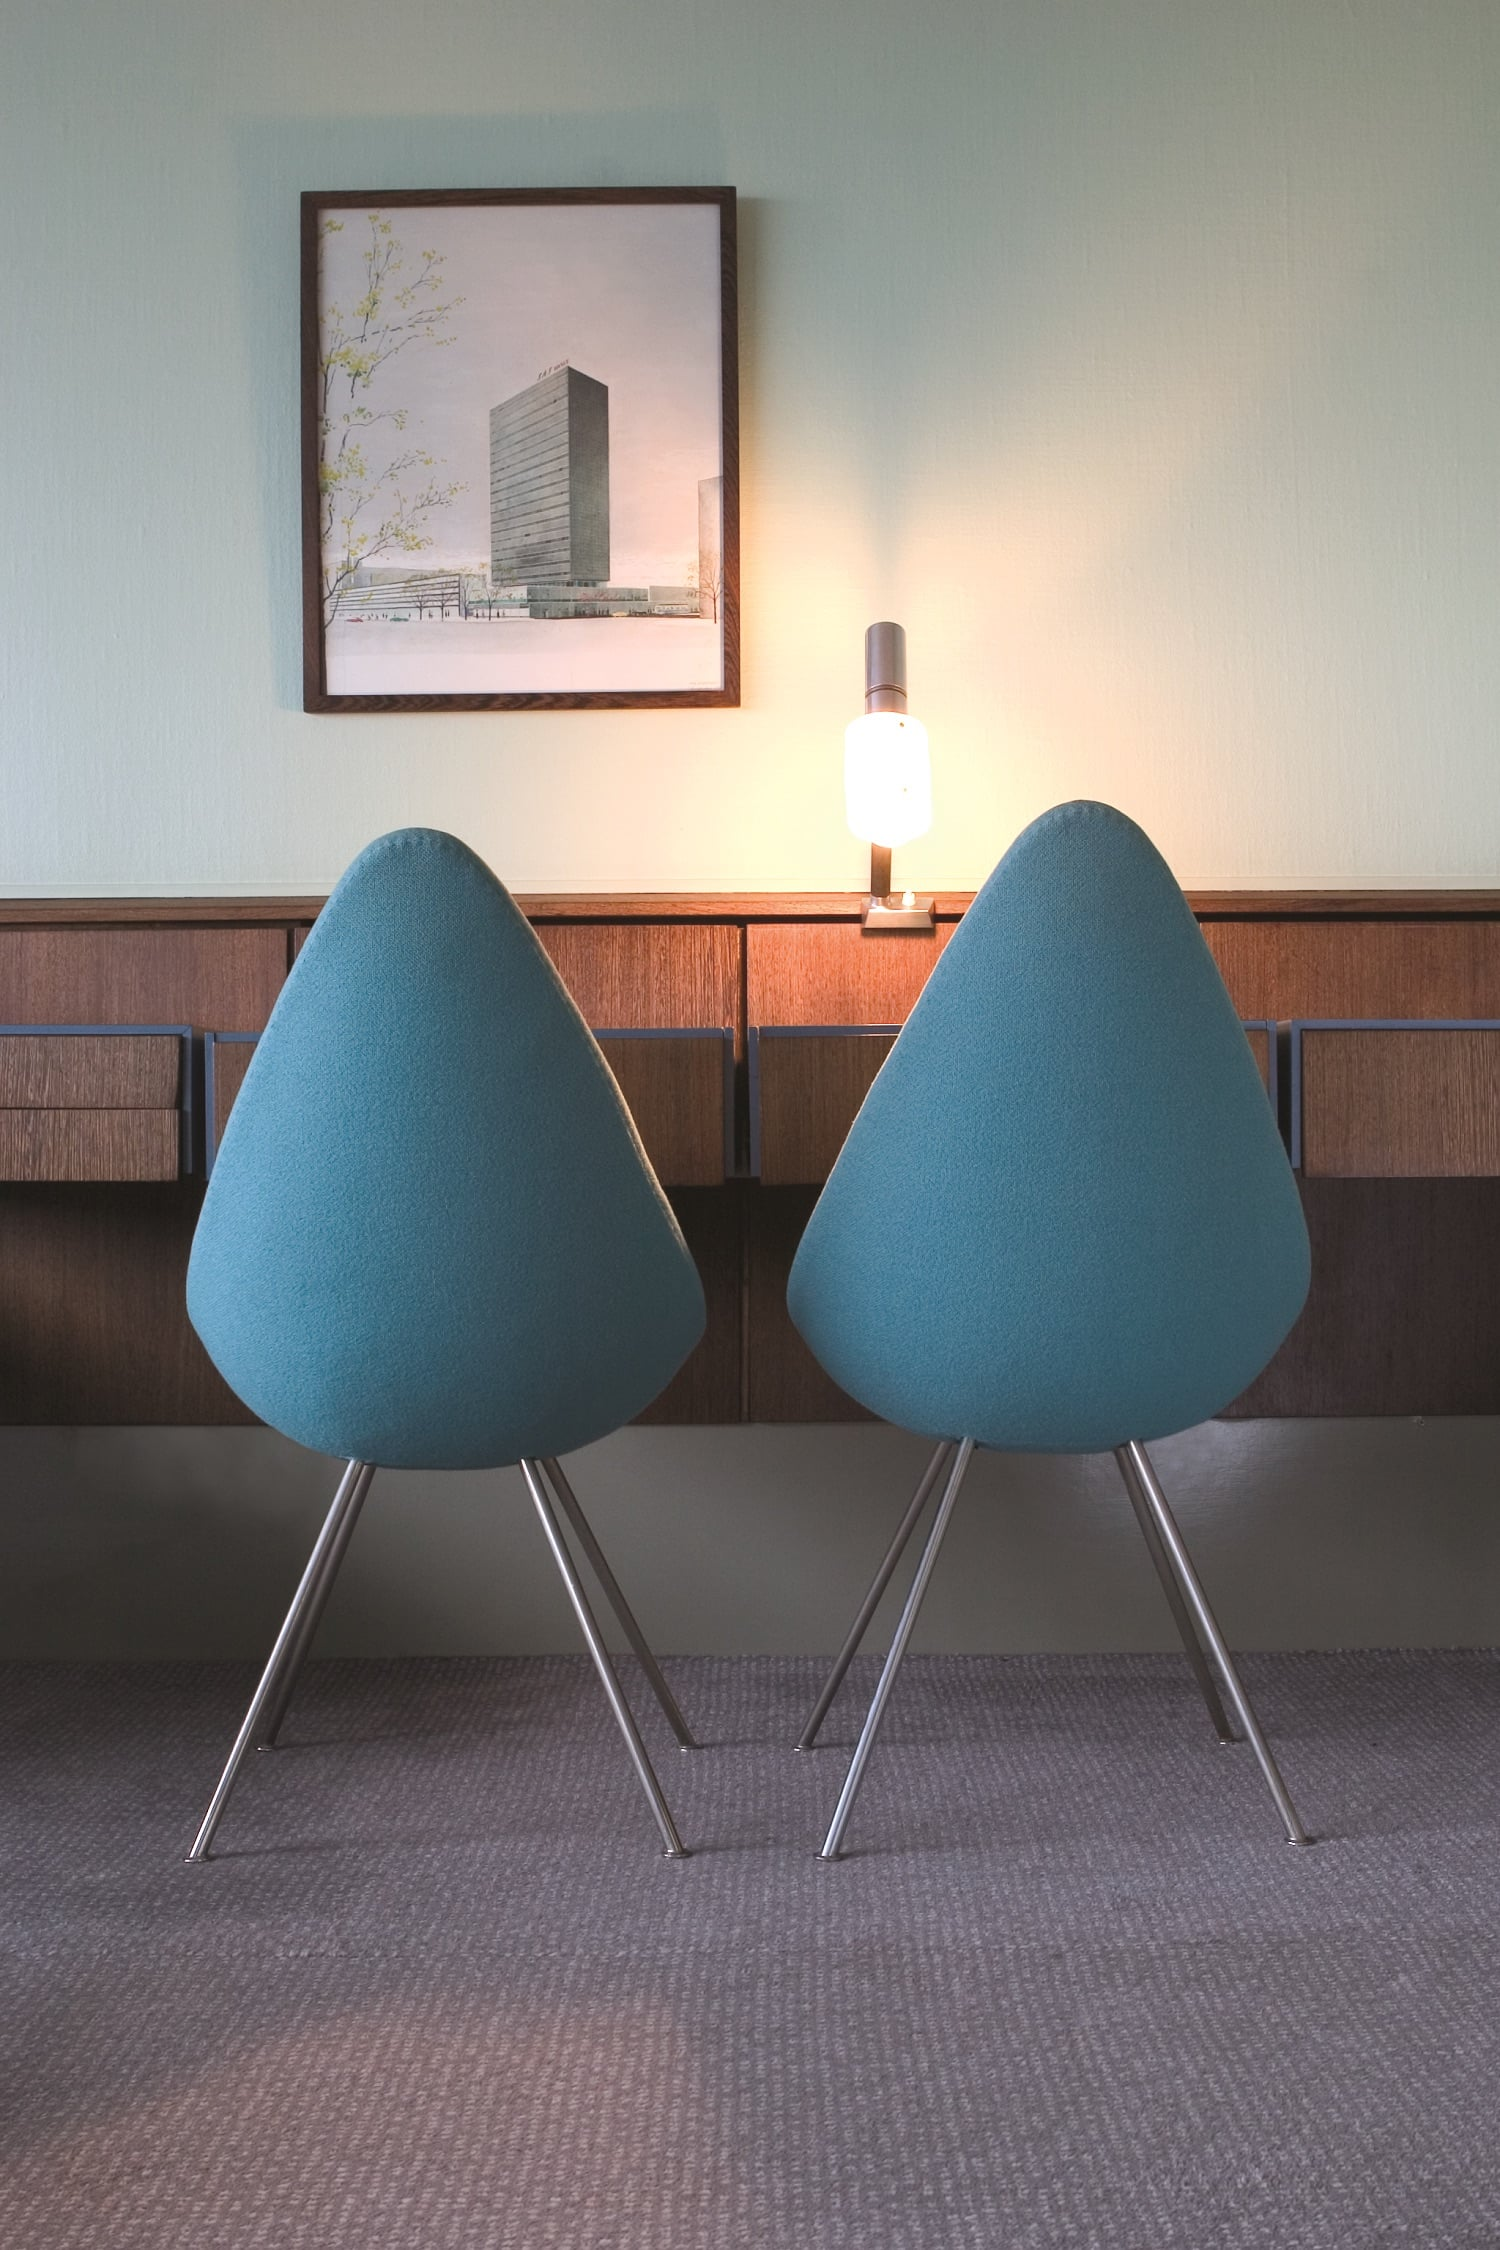 In room 606 of the Radisson Blu Royal Hotel, two Drop chairs by Arne Jacobsen offer an up-close view of a vintage photo of the building's exterior.